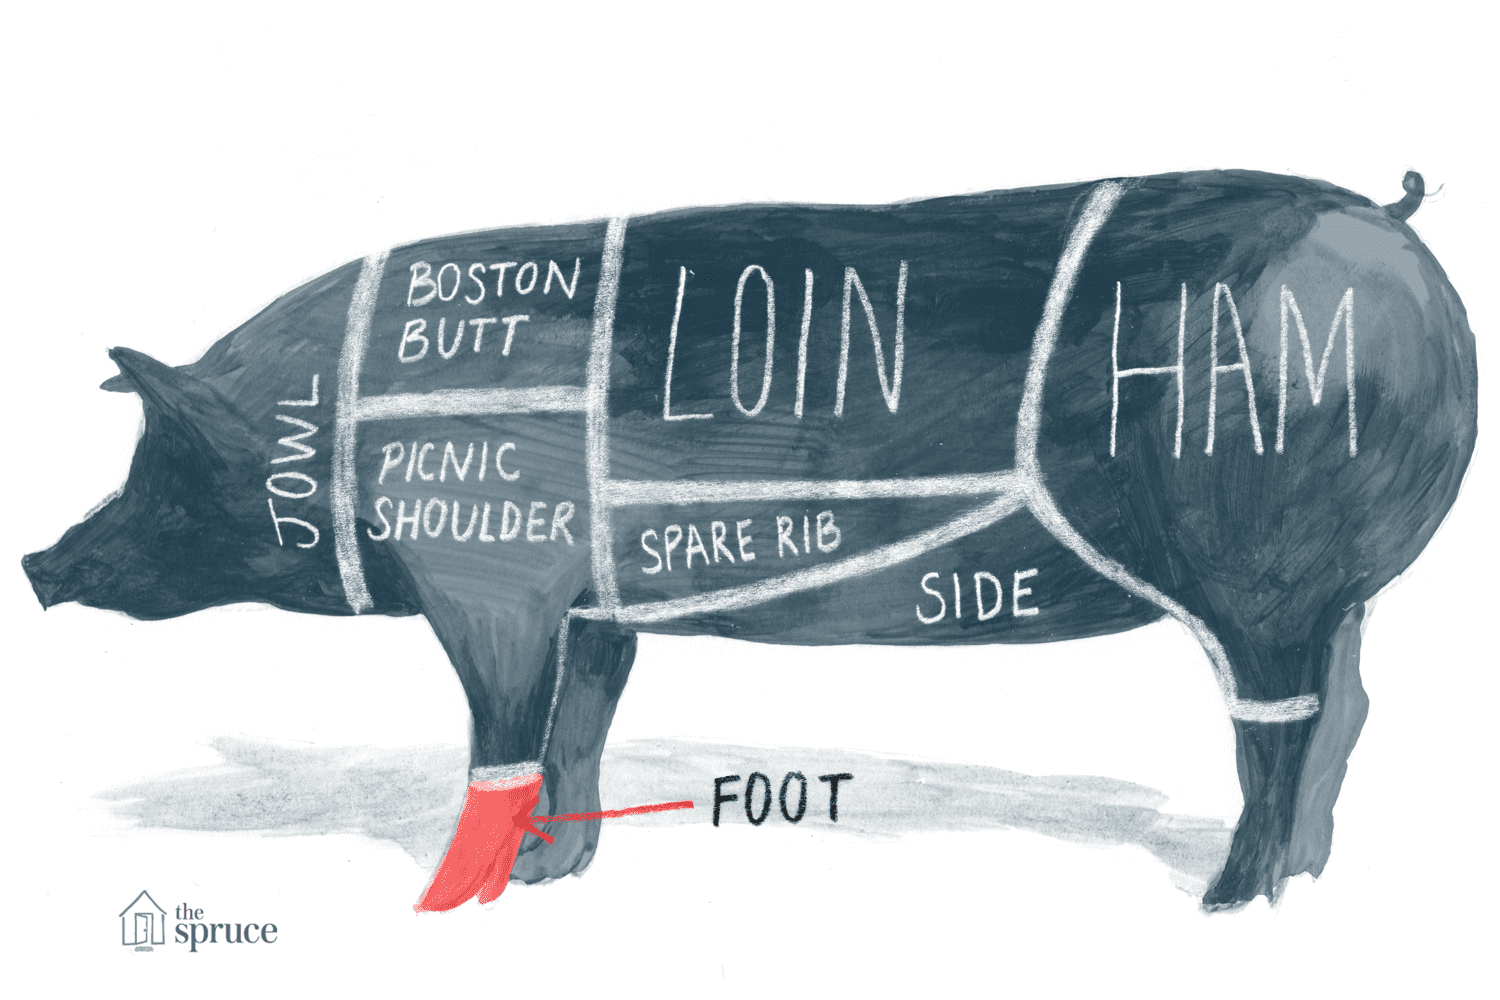 Illustrated diagram of the cuts of pork highlighting the foot